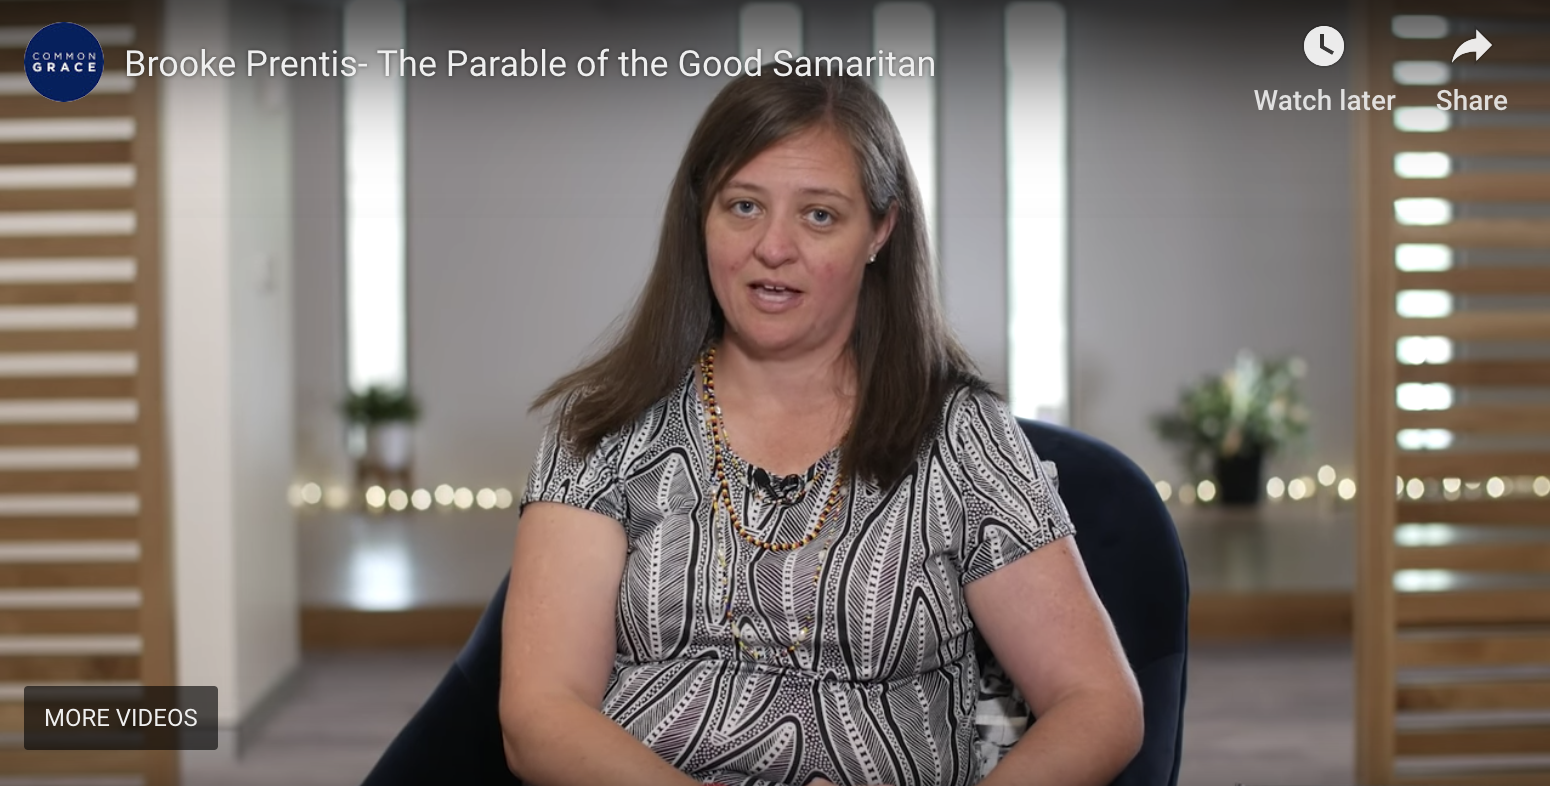 The Good Samaritan      Common Grace's Lent Teaching Series   13 March, 2019  Brooke Prentis, 2019 ADM Senior Fellow, shares a powerful reflection, inviting us to see our neighbour who is hurting and who does not feel loved.